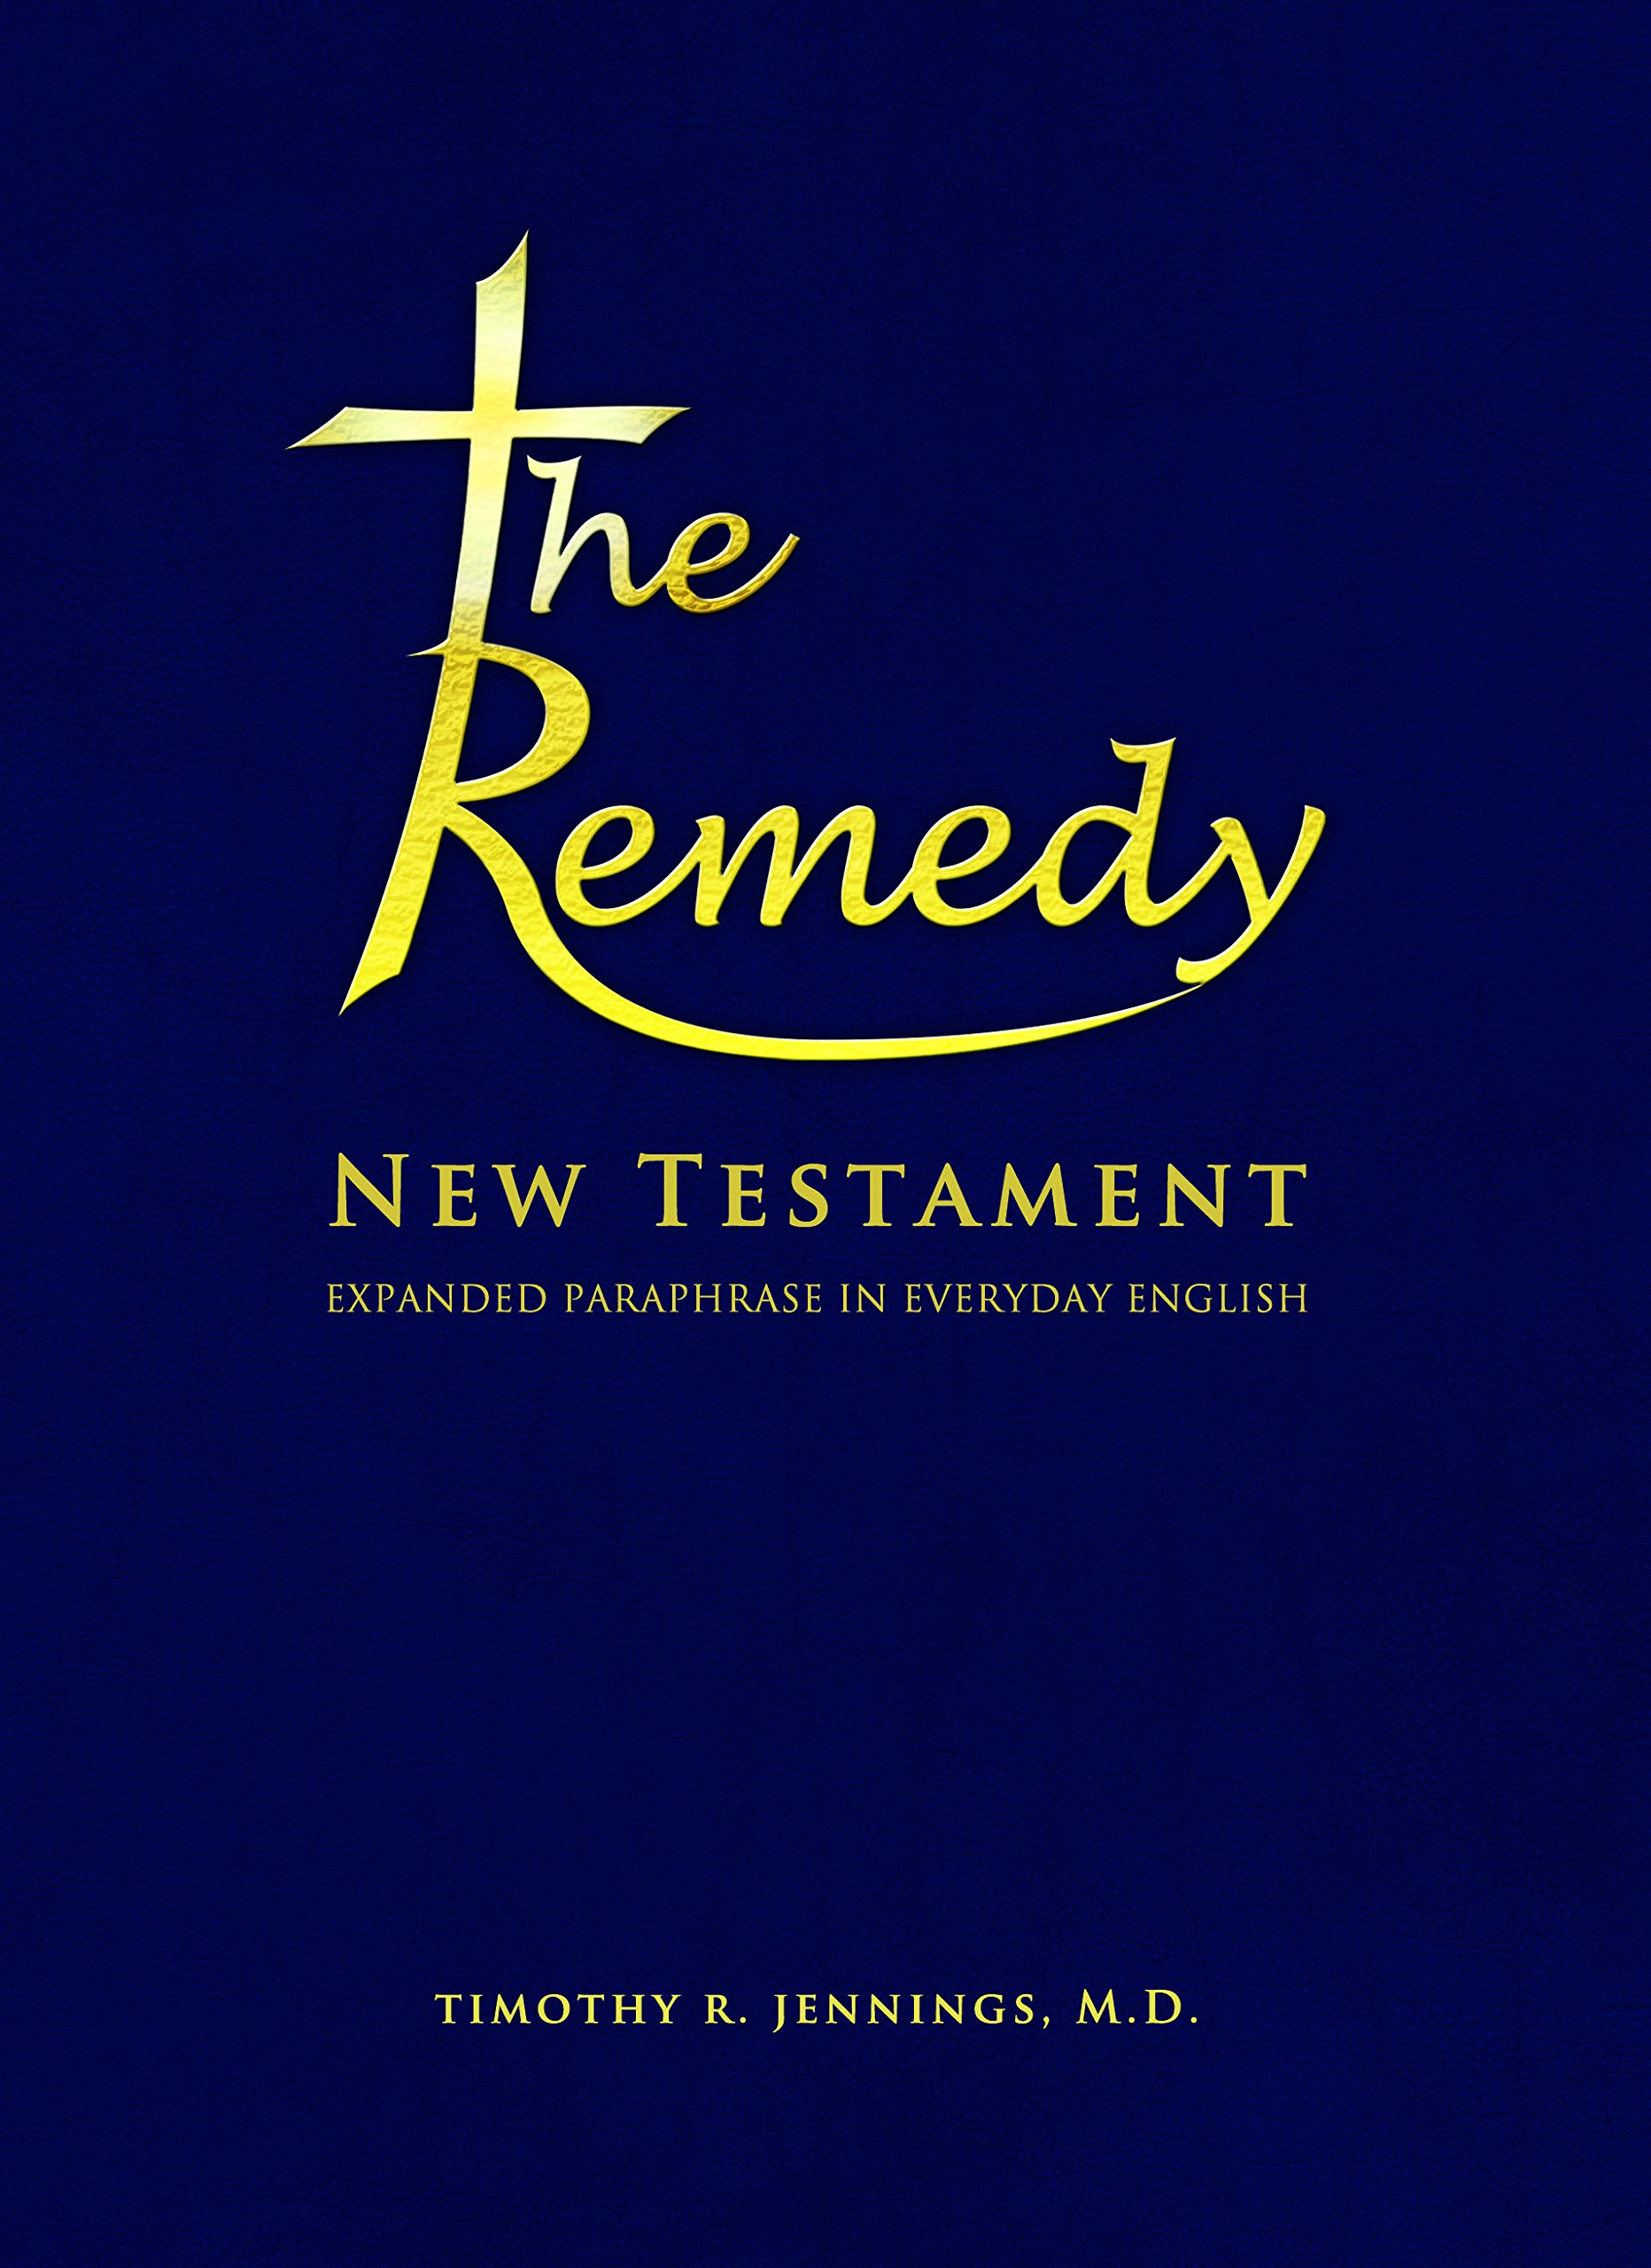 The Remedy, 2nd Edition